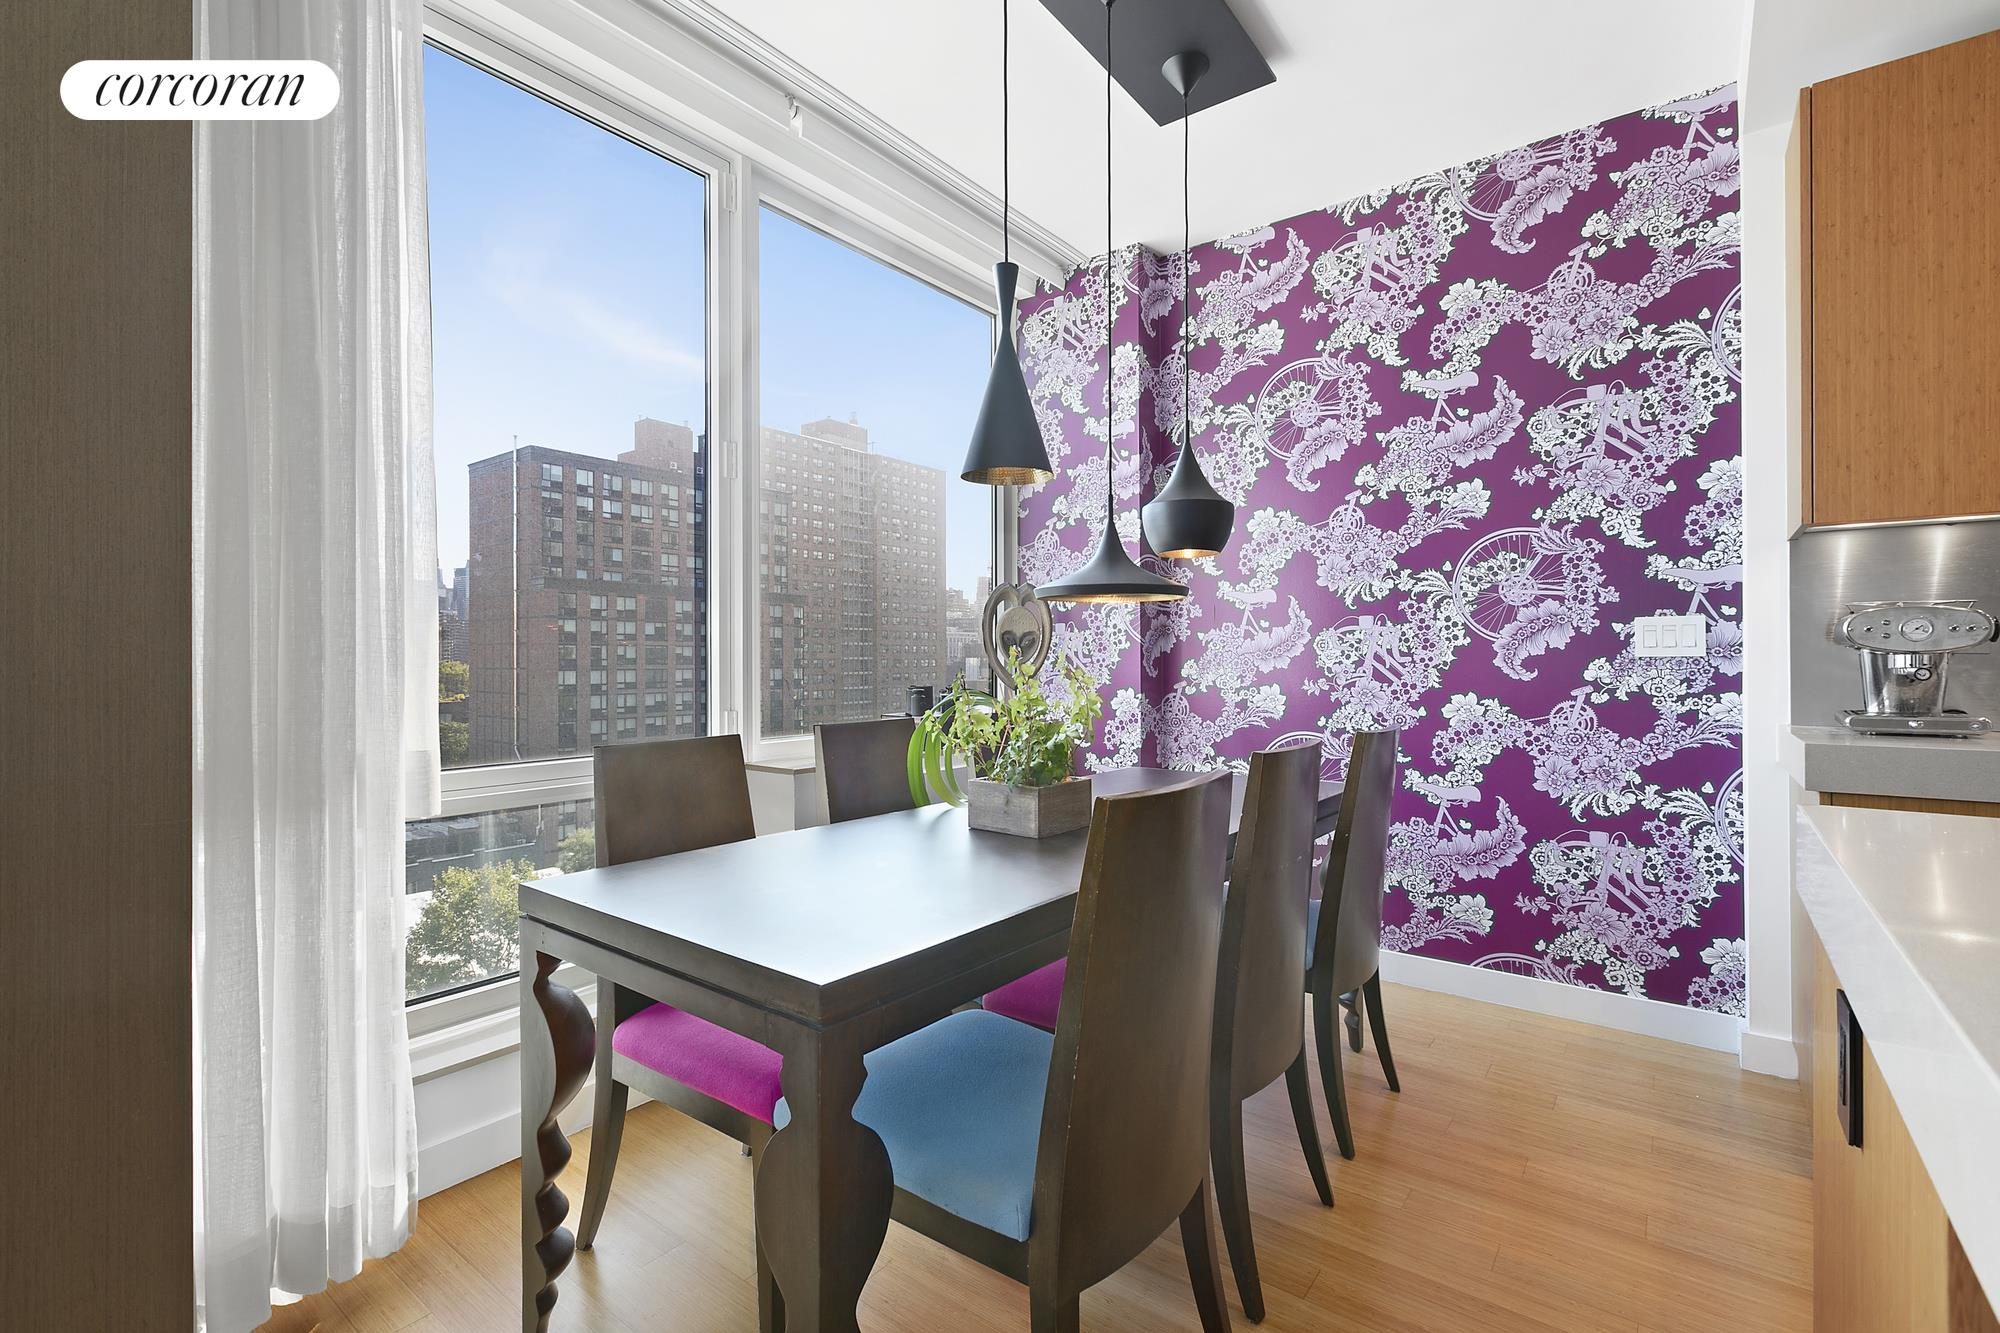 Apartment for sale at 450 West 17th Street, Apt 1102